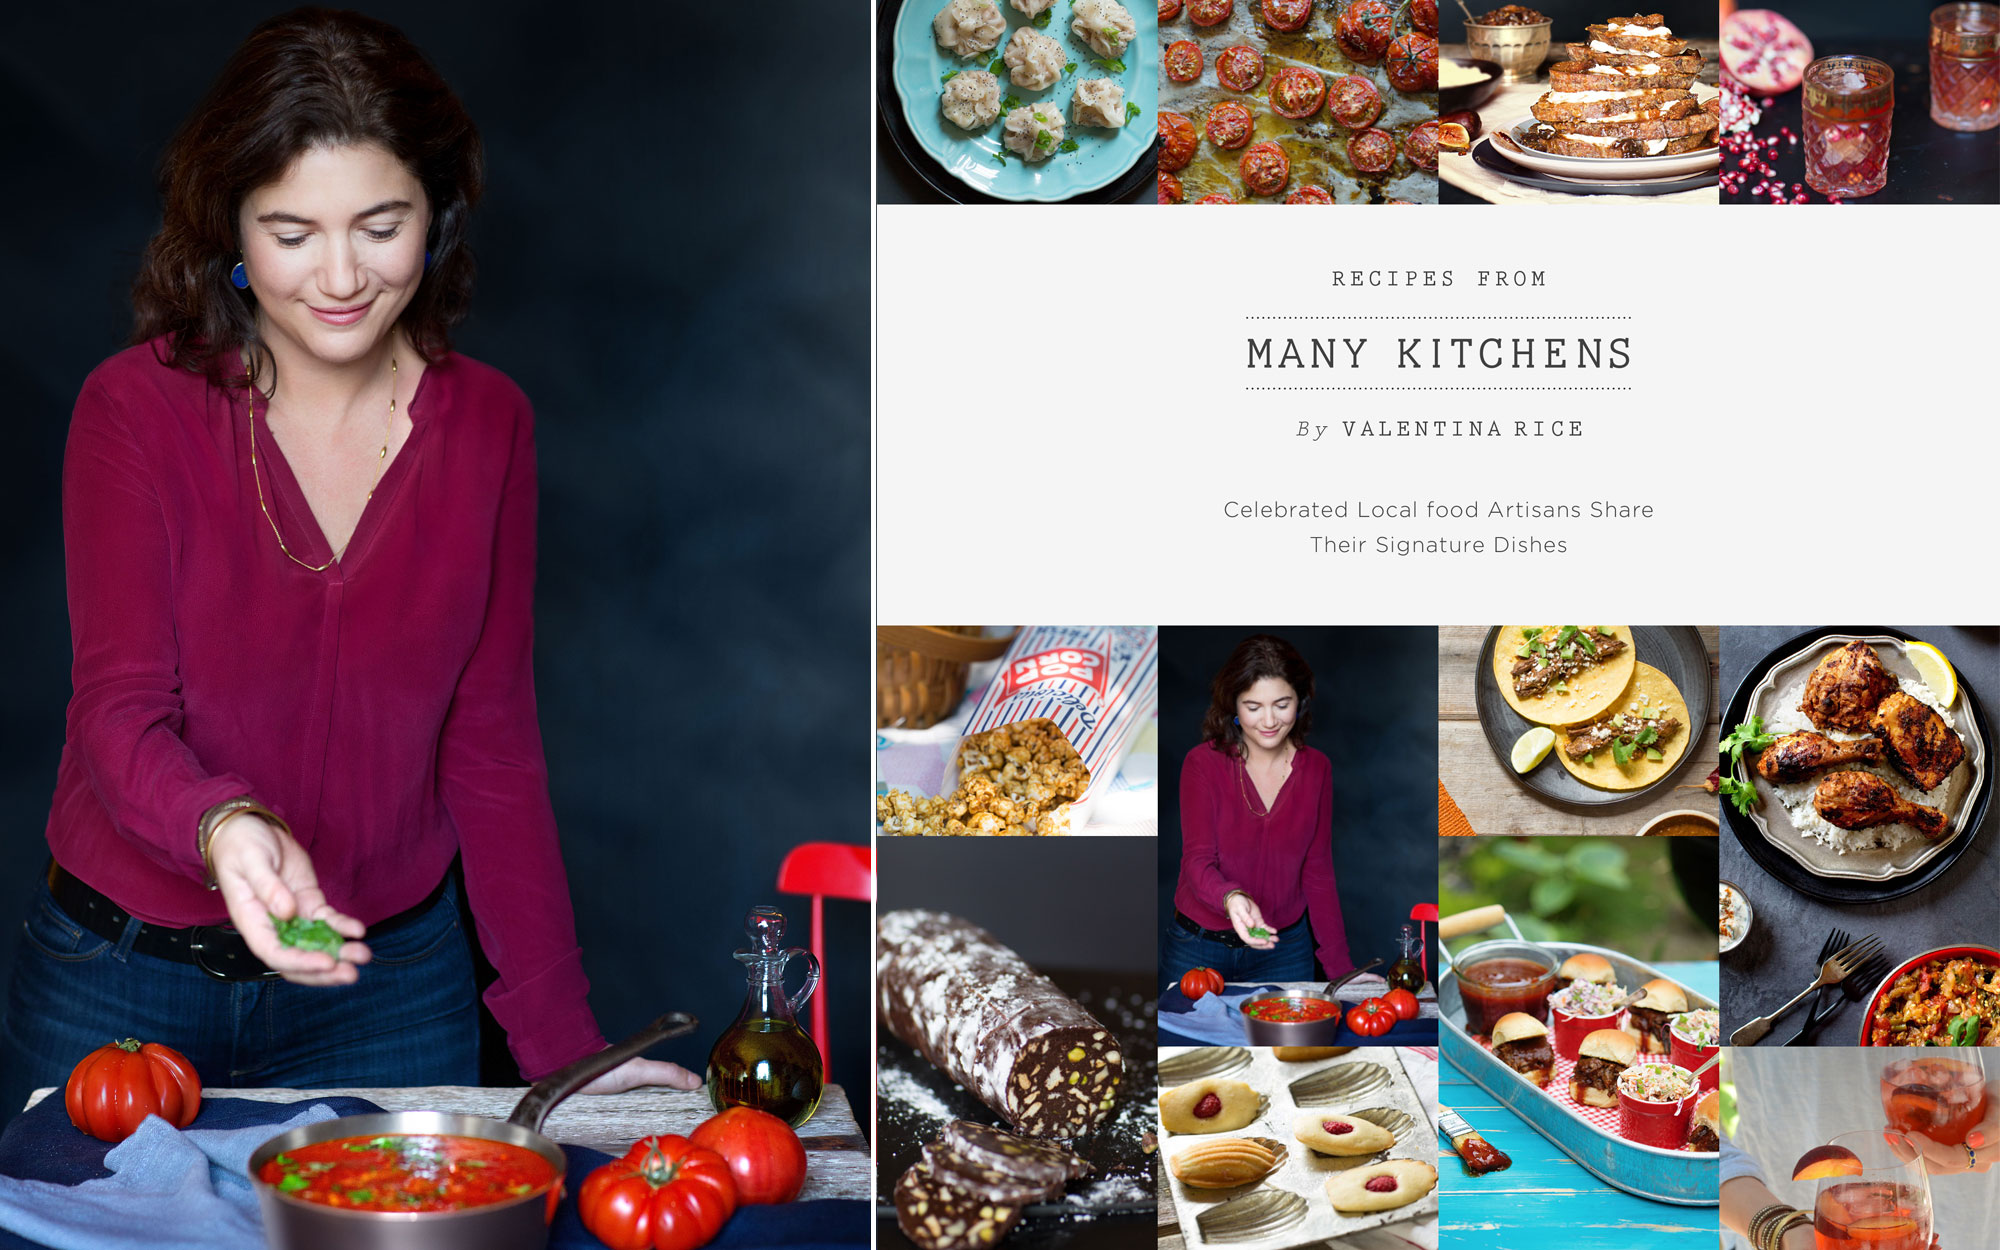 Valentina Rice on Food Destinations and Multicultural Cooking